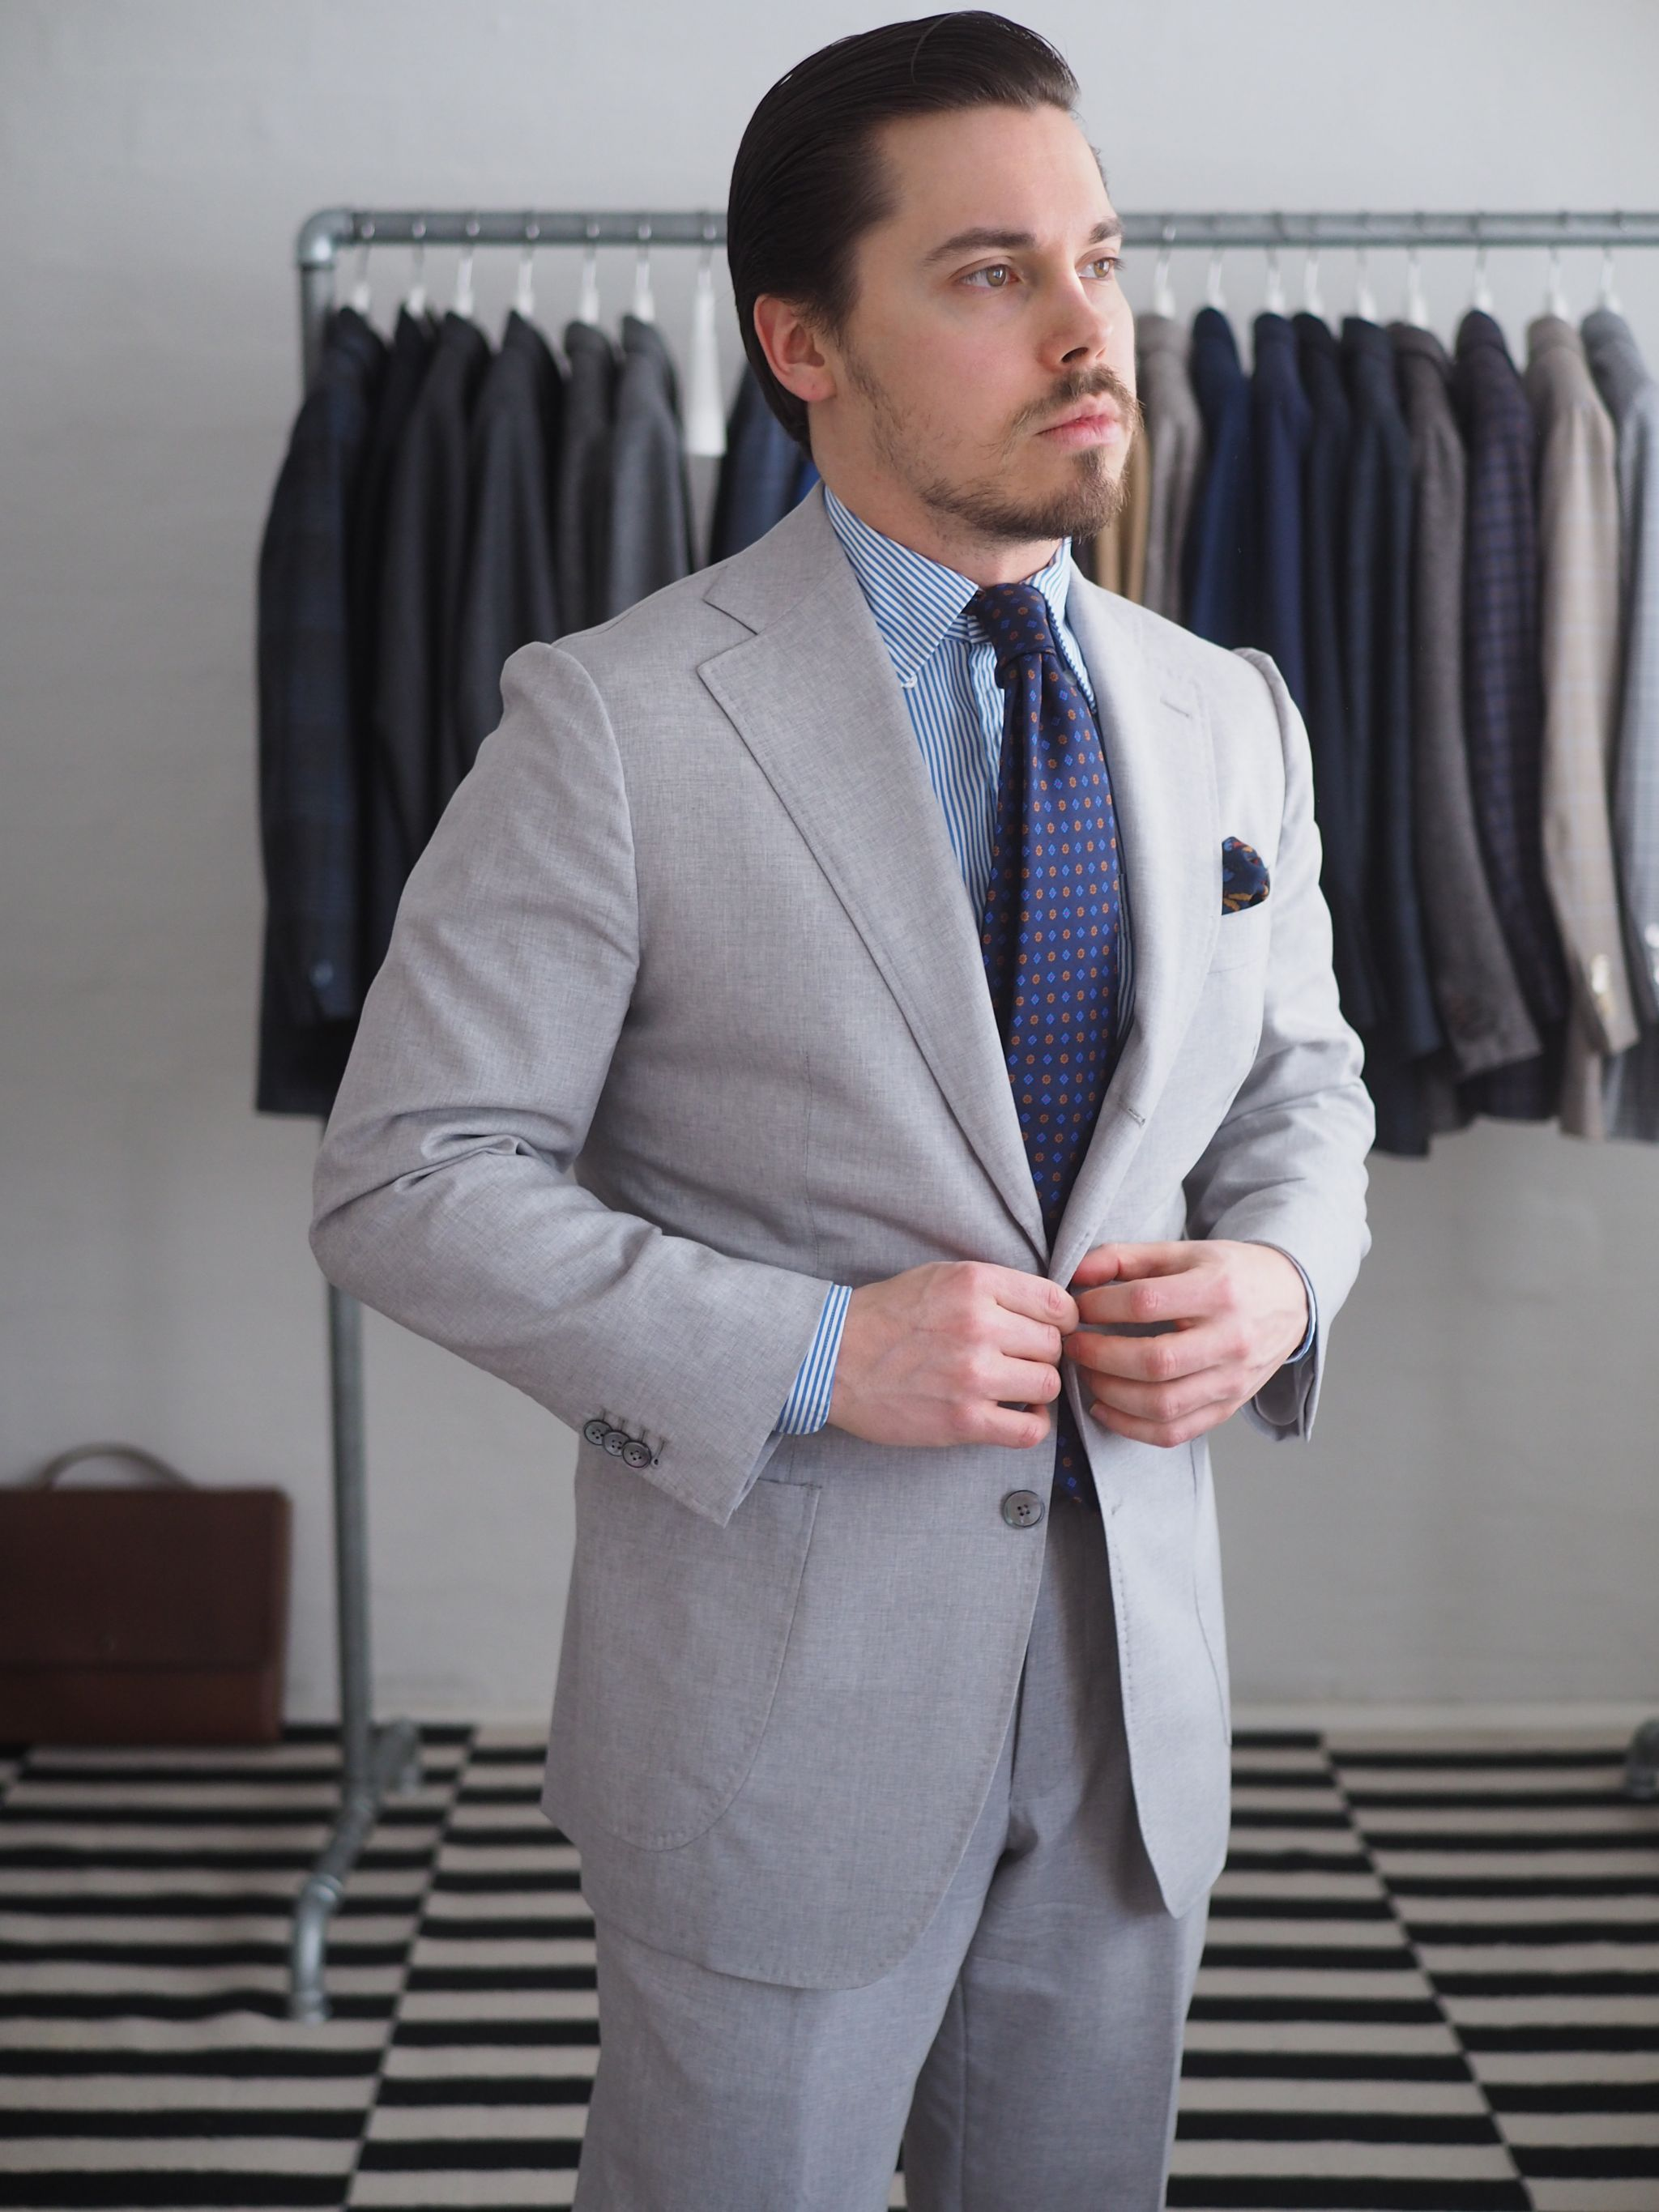 Light gray suit with a printed tie and striped shirt.